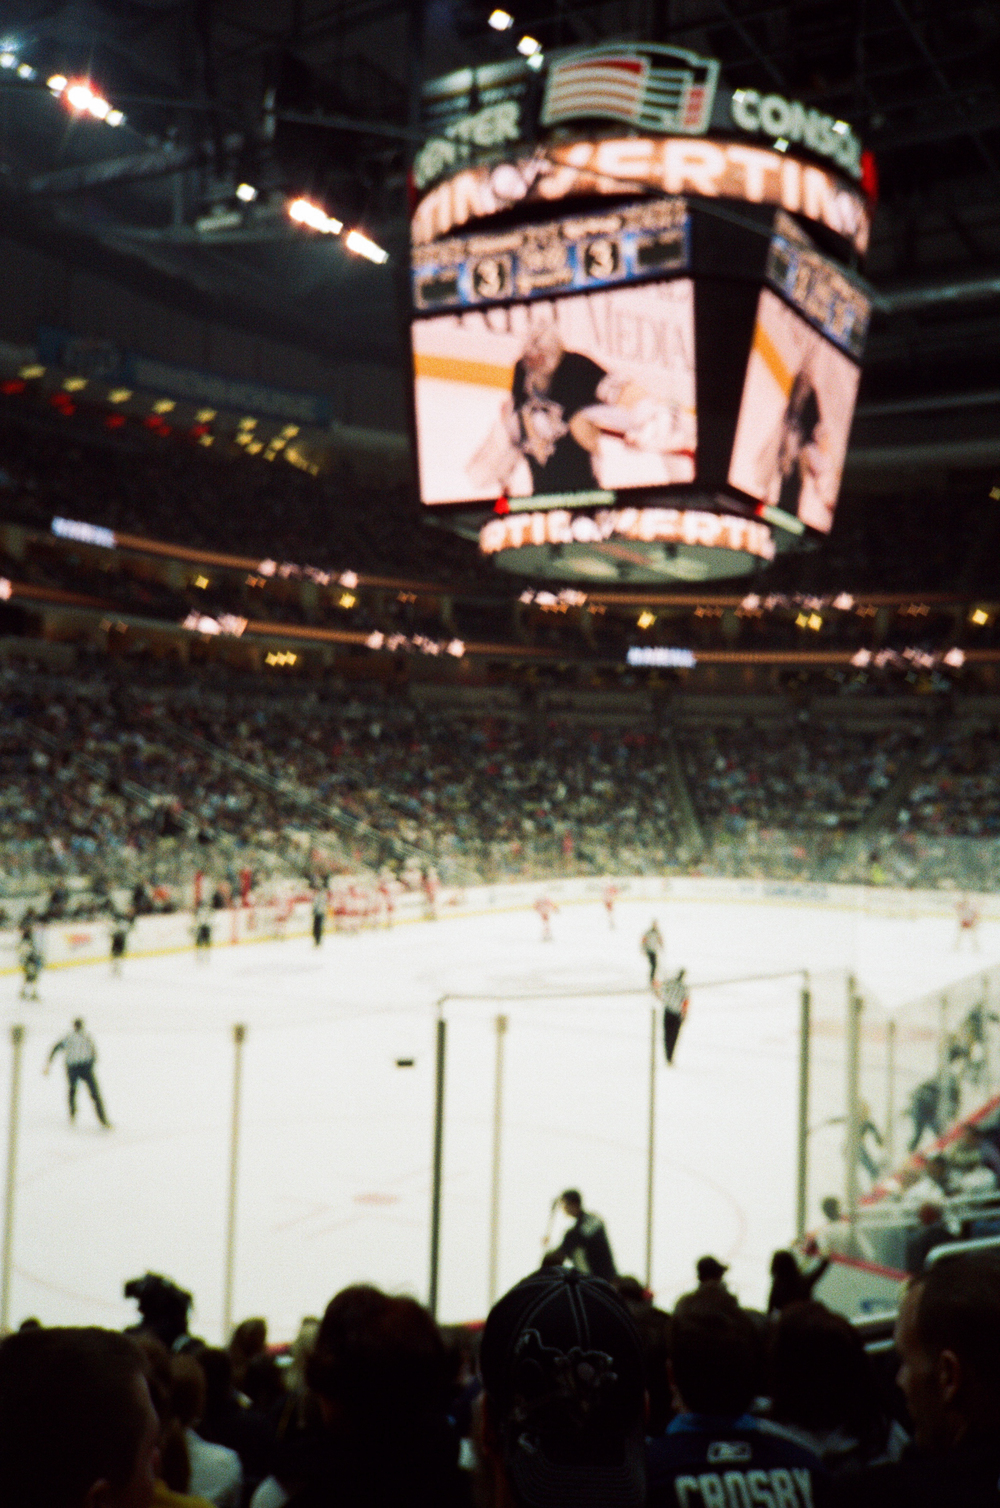 Hockey-Night-In-Pittsburgh-Film-Photography-Karlsson-057.jpg